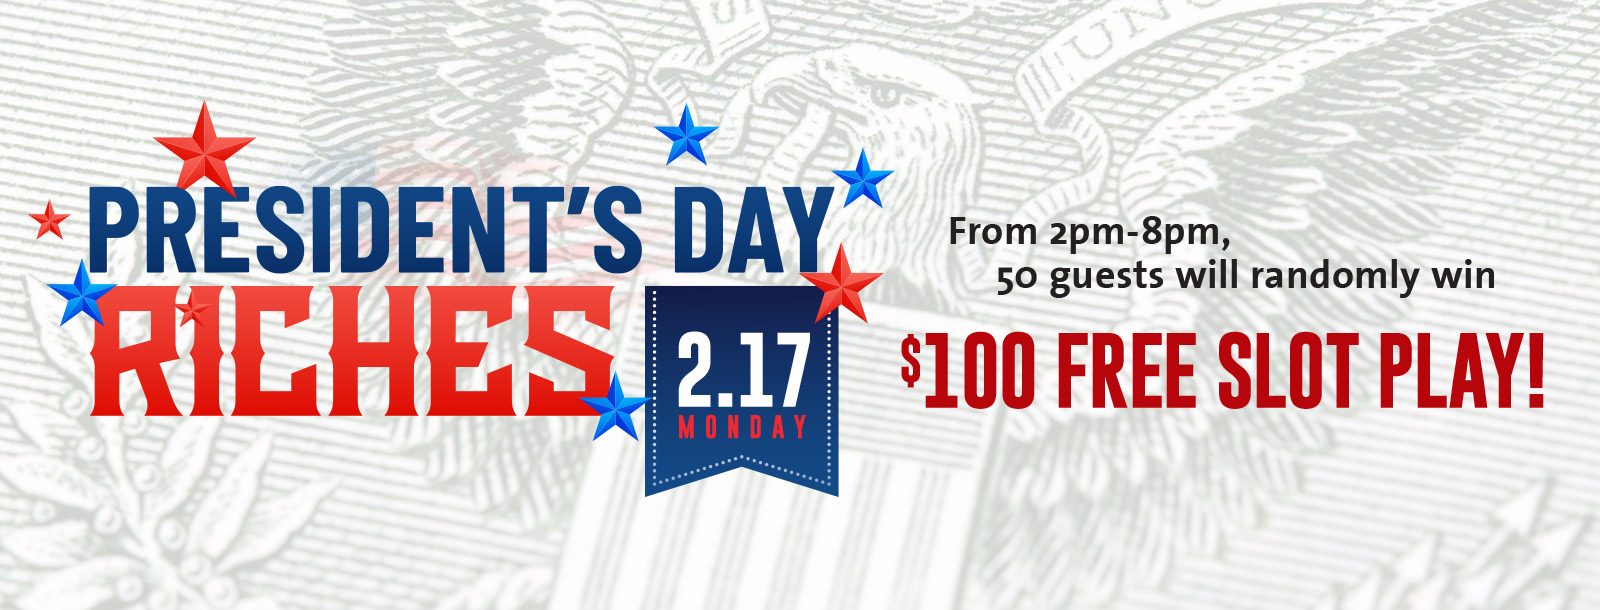 presidents day riches promotion